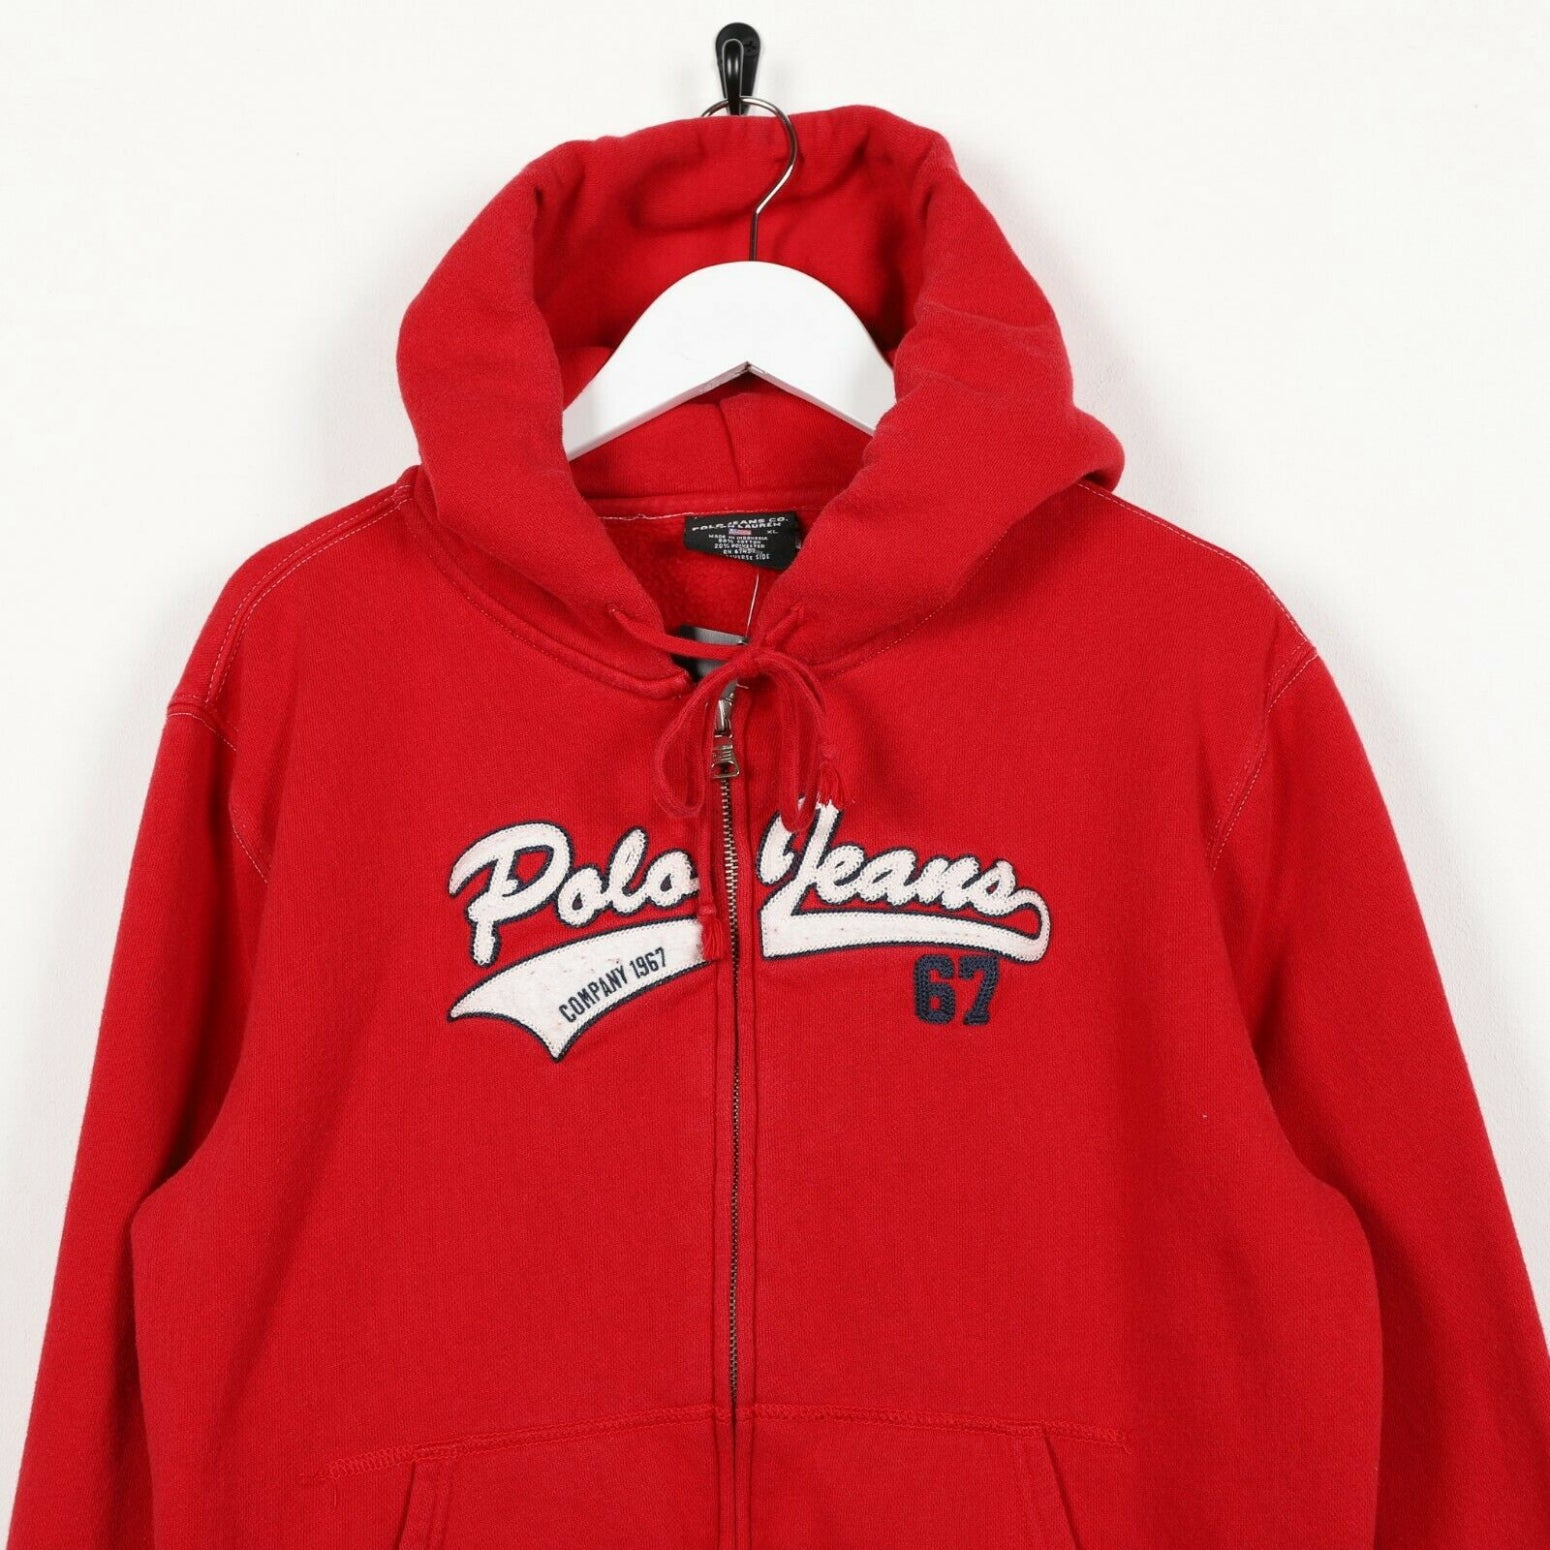 Vintage Women's RALPH LAUREN POLO JEANS Zip Up Hoodie Sweatshirt Red | Medium M